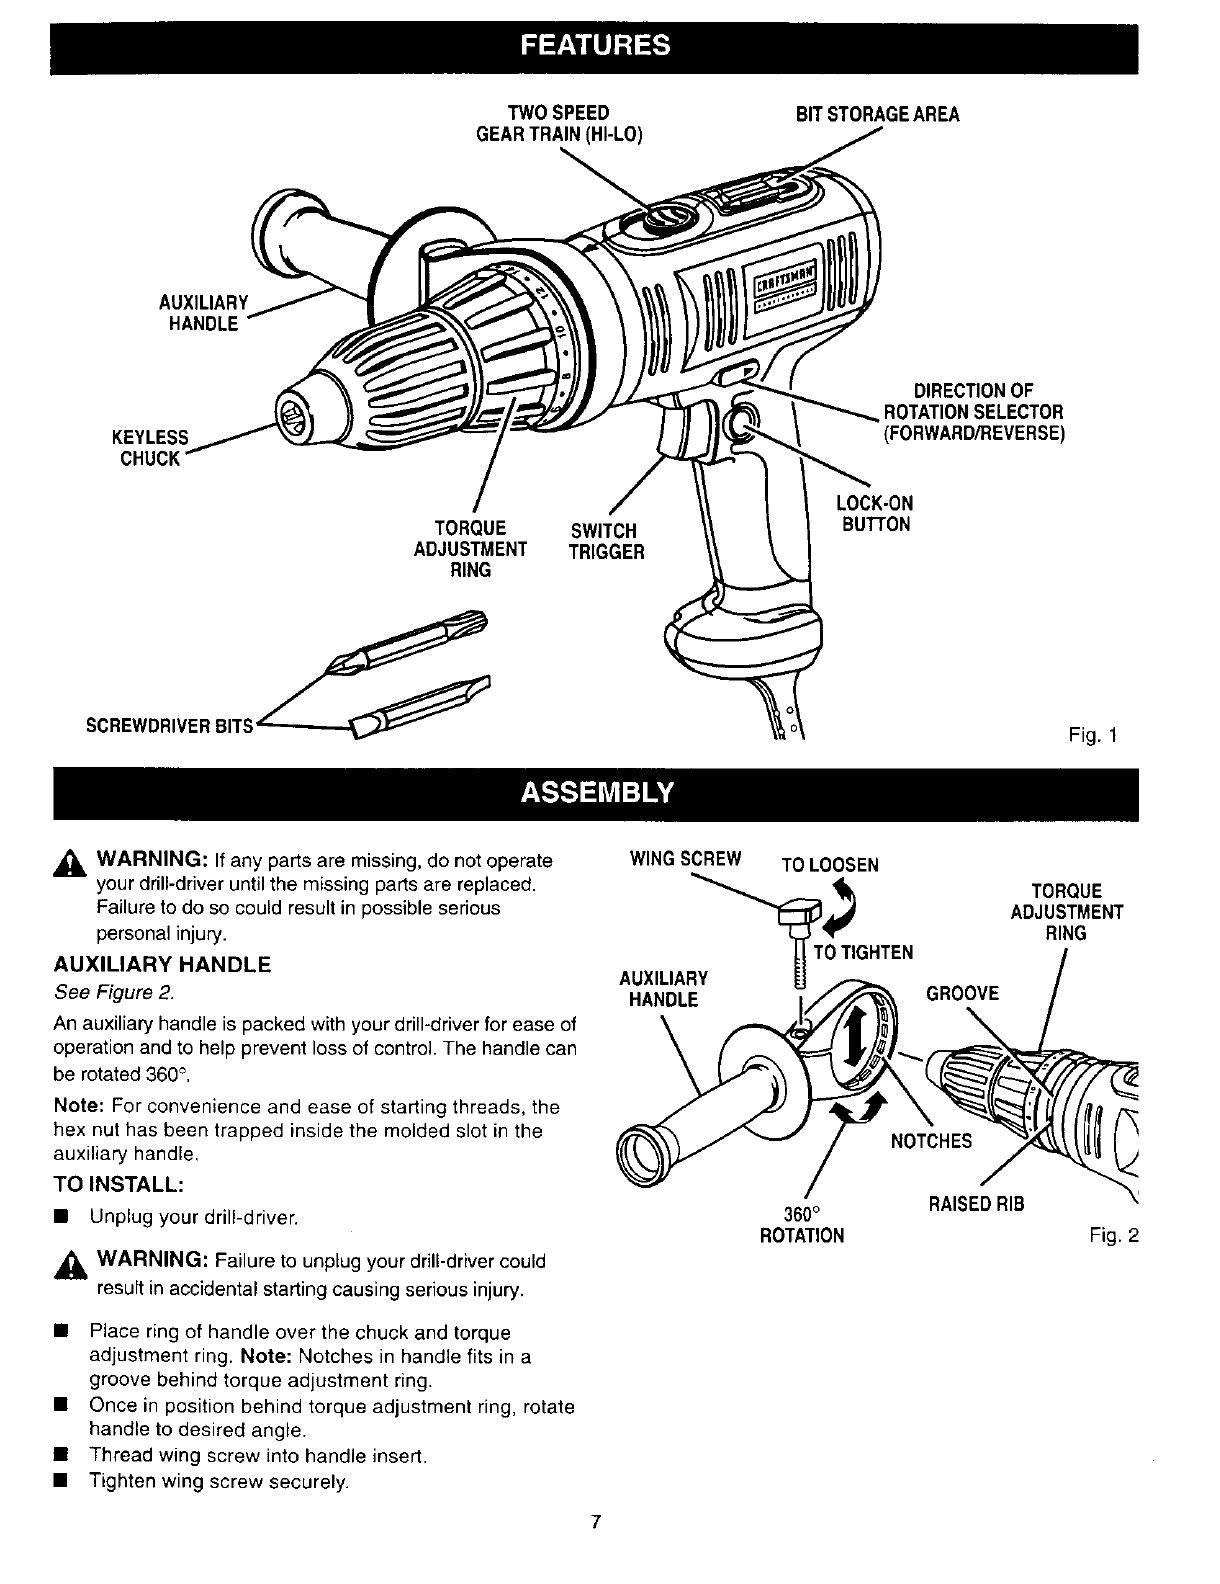 Page 7 of Craftsman Drill 315.27994 User Guide